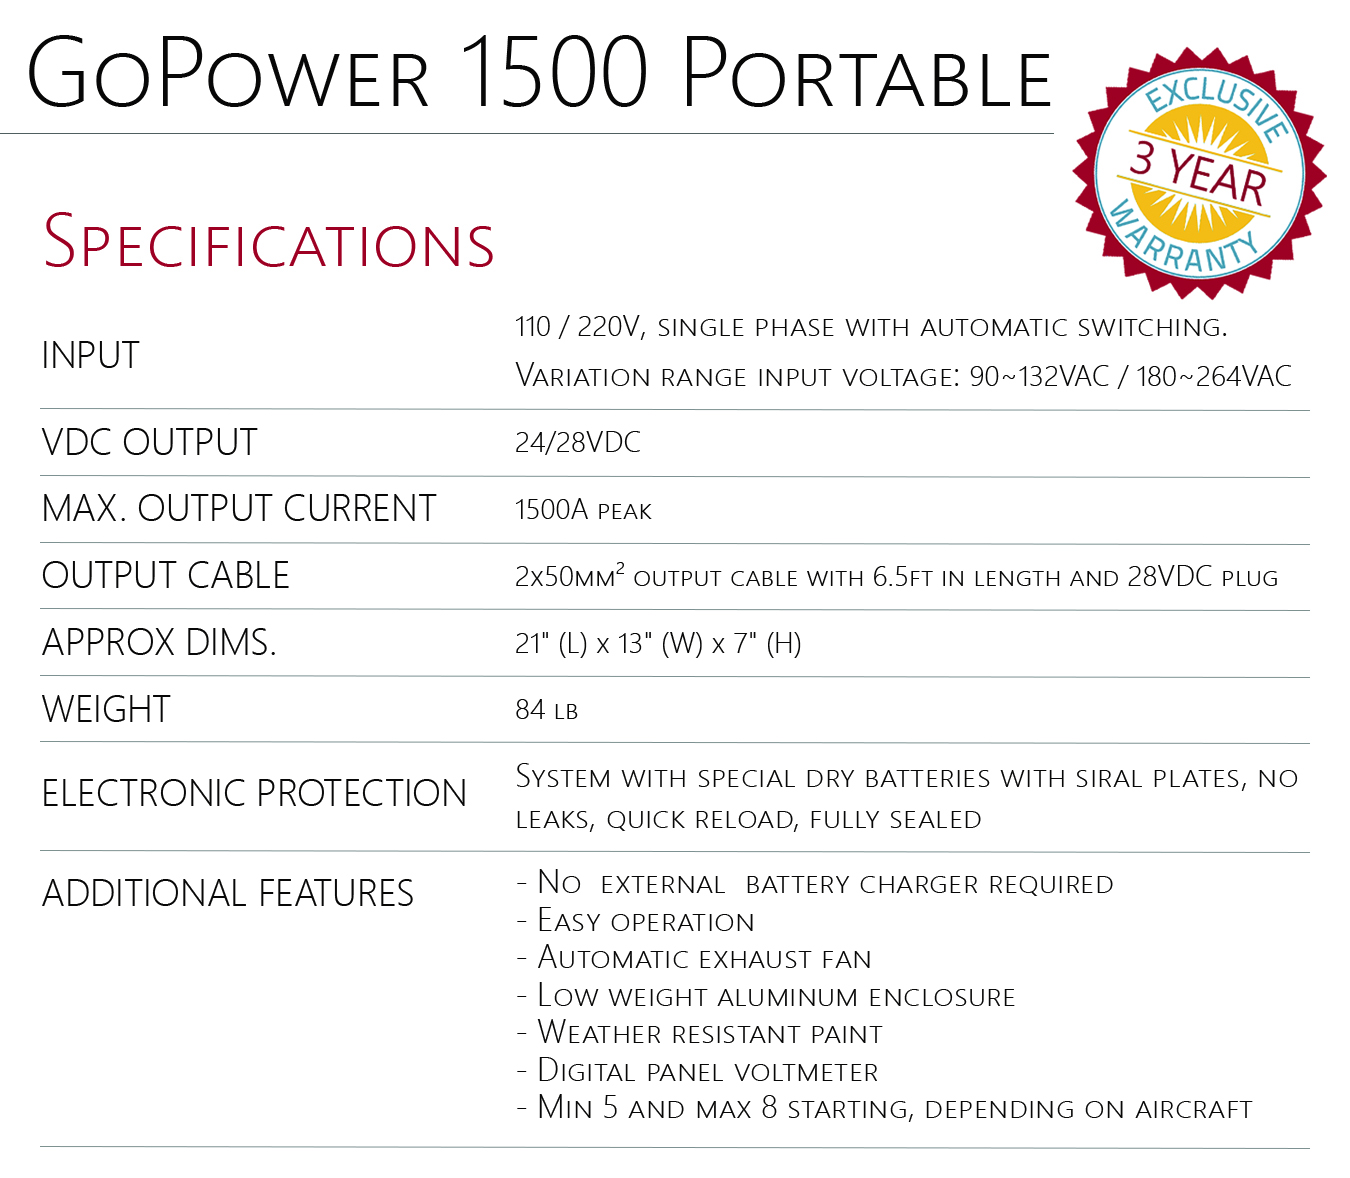 GoPower 1500 Specifications website.jpg